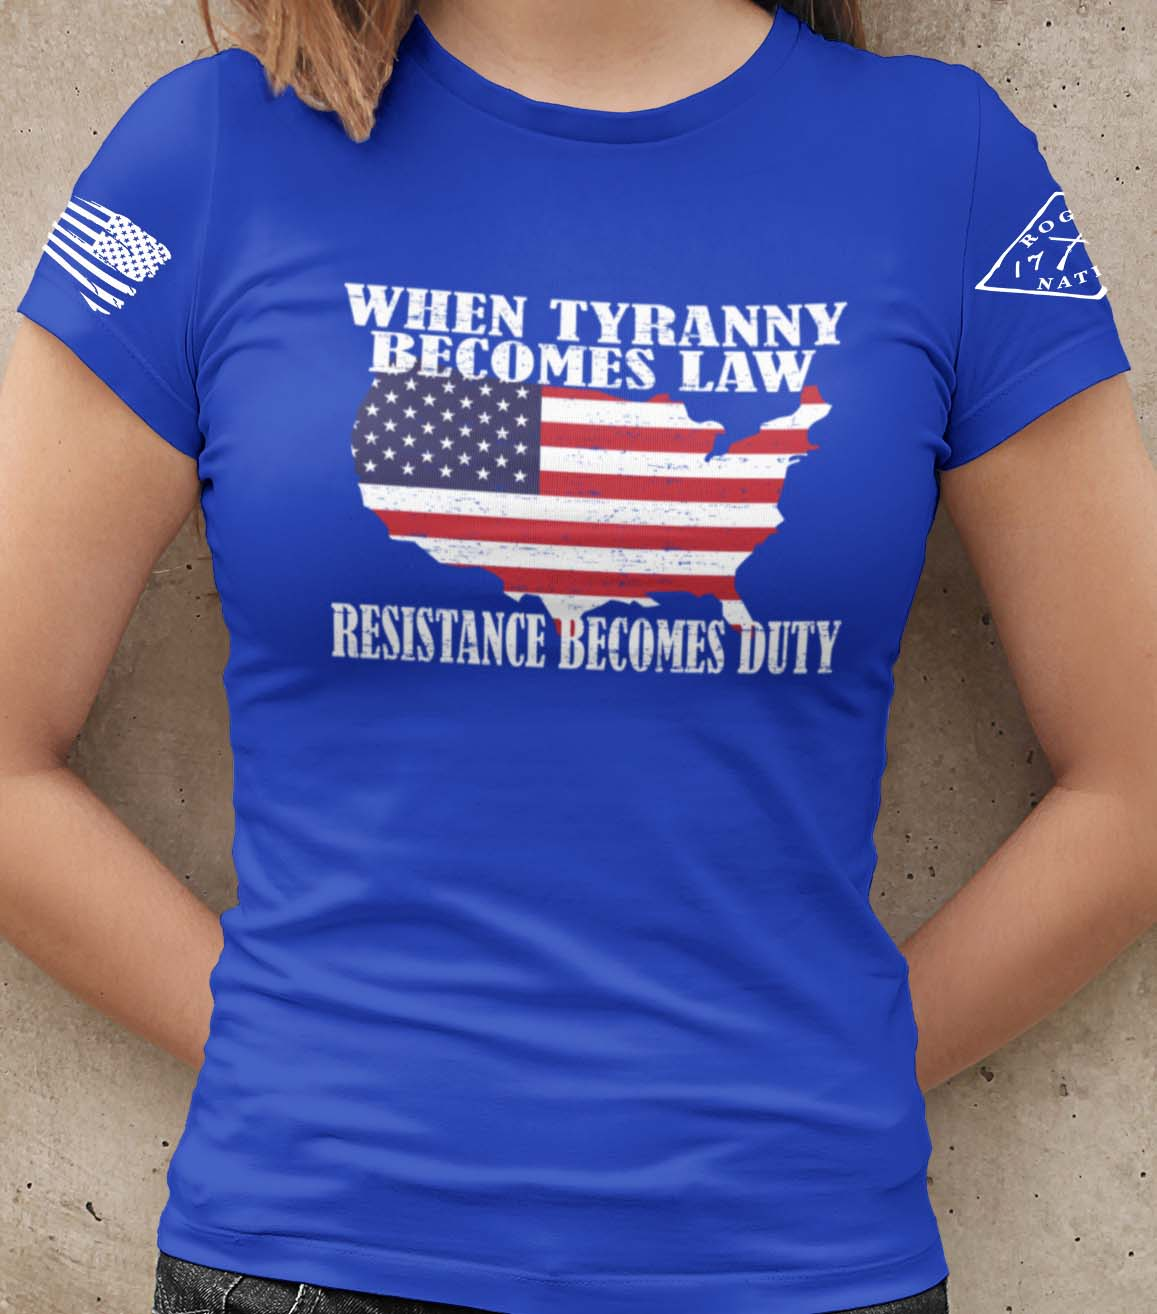 When Tyranny Becomes Law Resistance Becomes Duty T-Shirt in Royal Blue